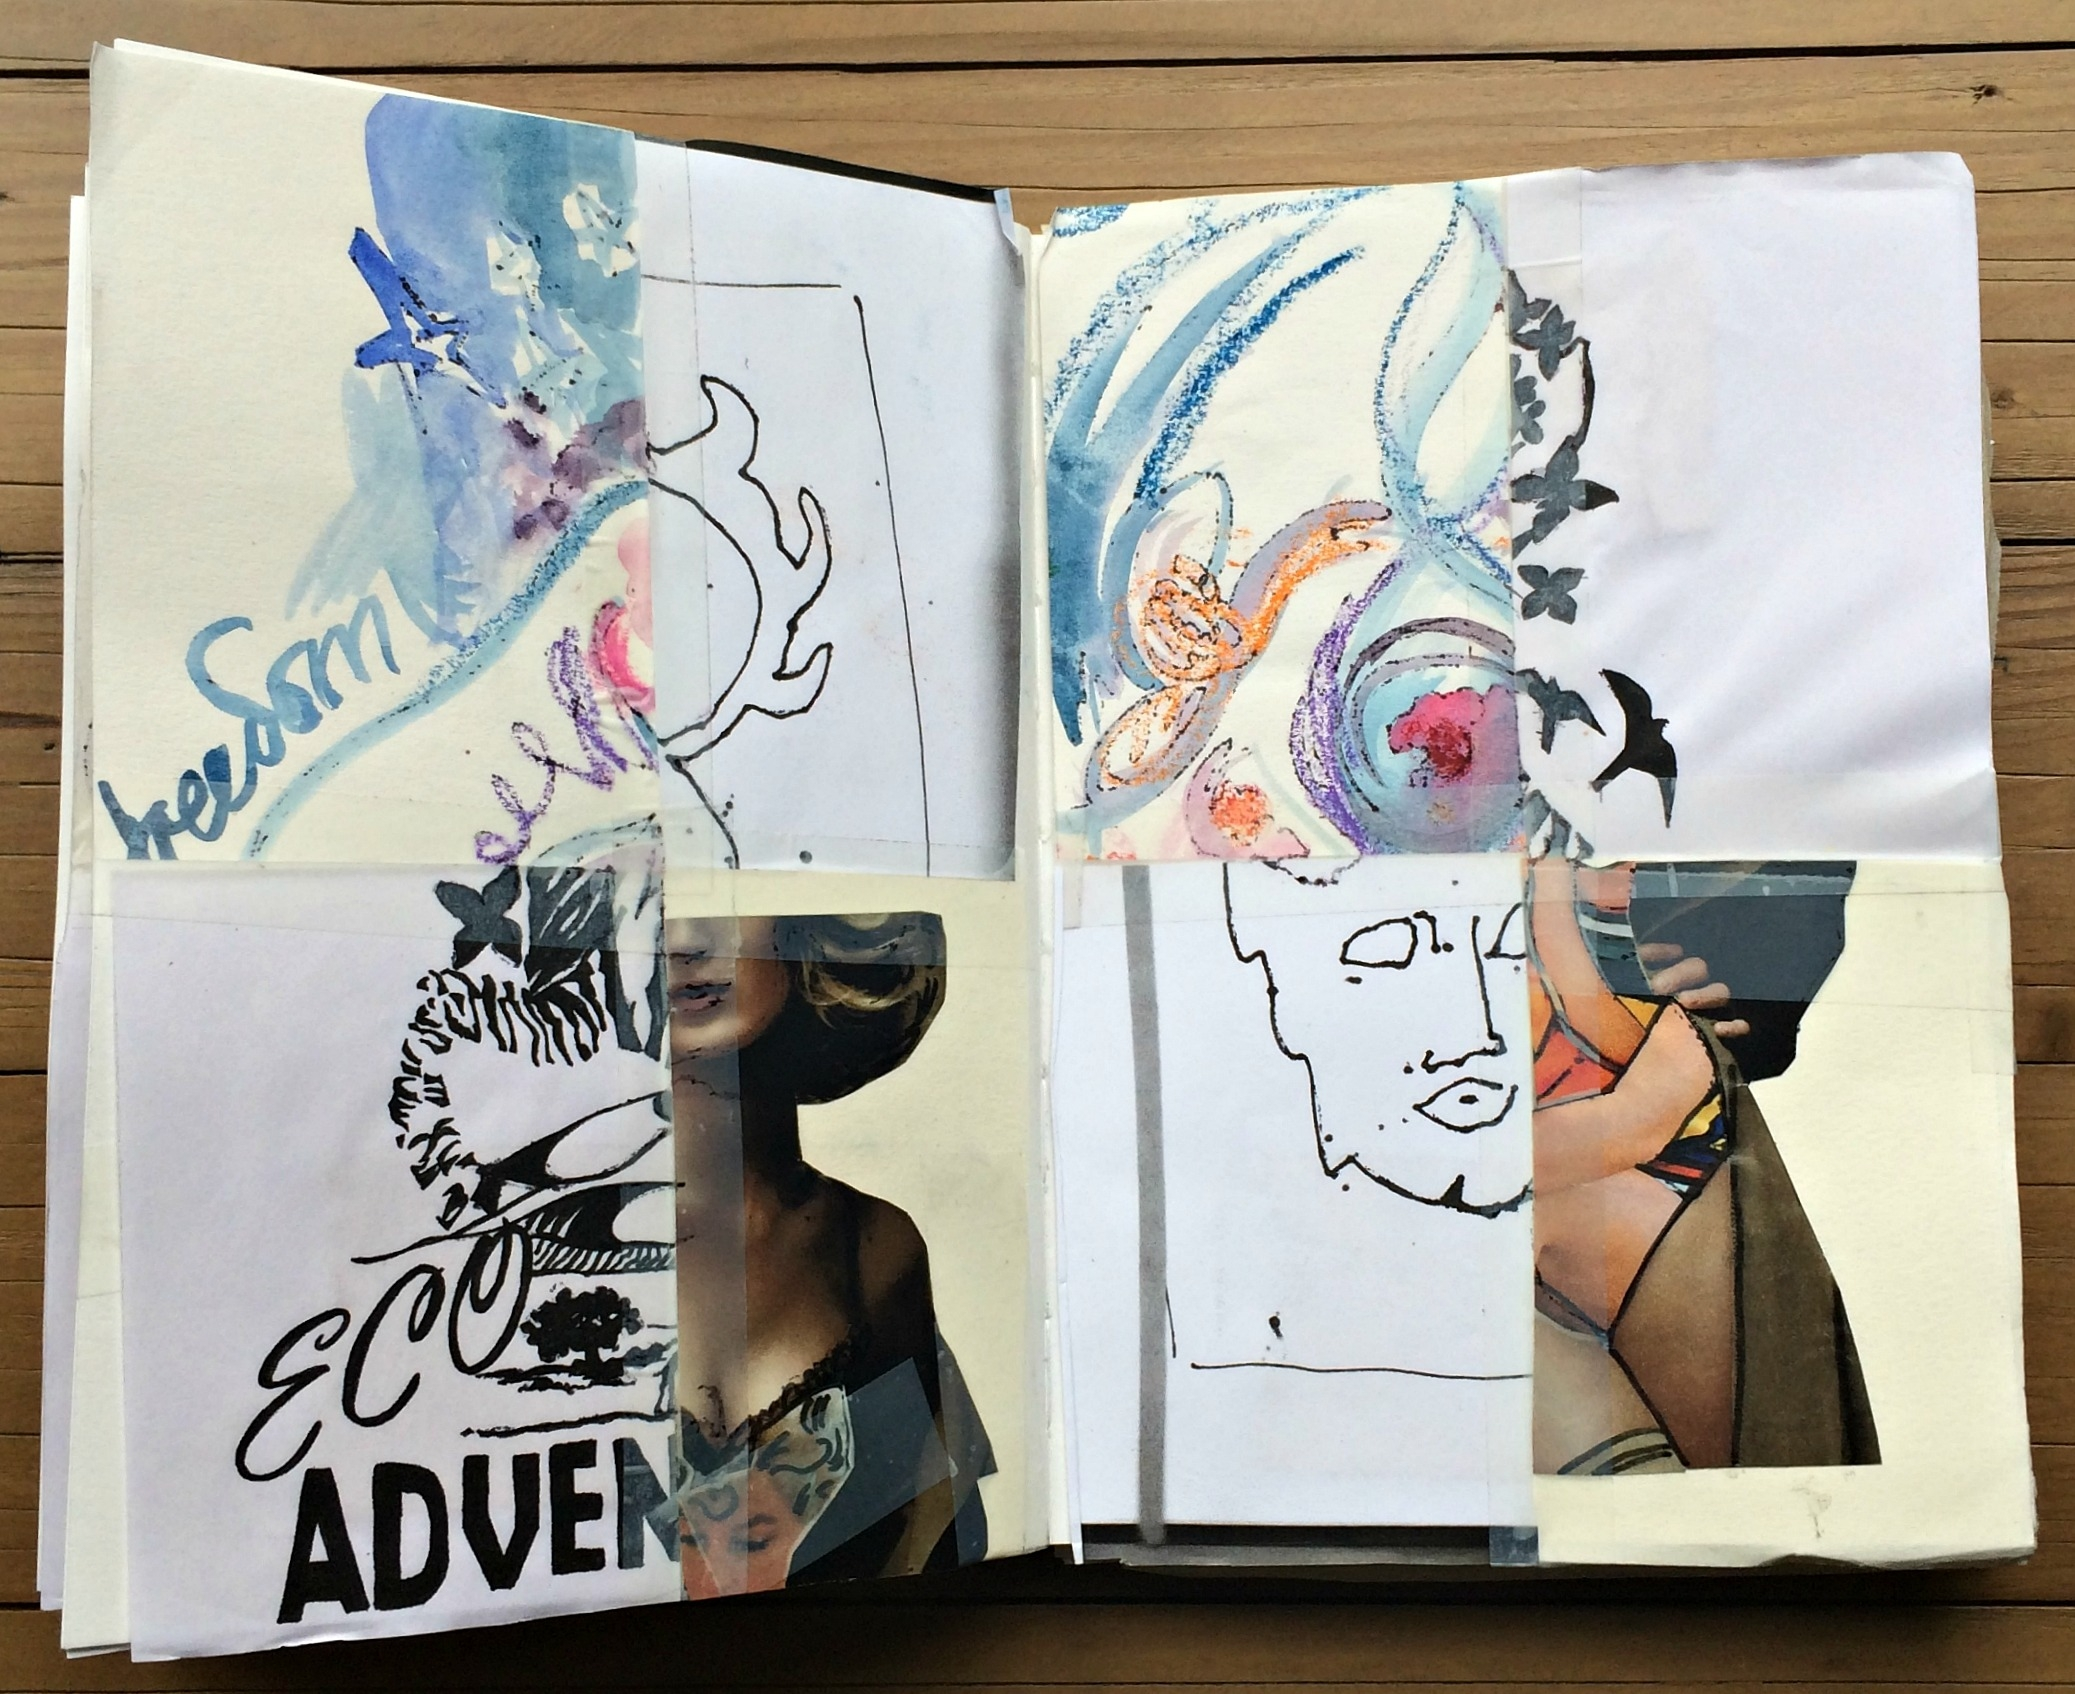 Sketchbook 1: drawings spliced to create a new image